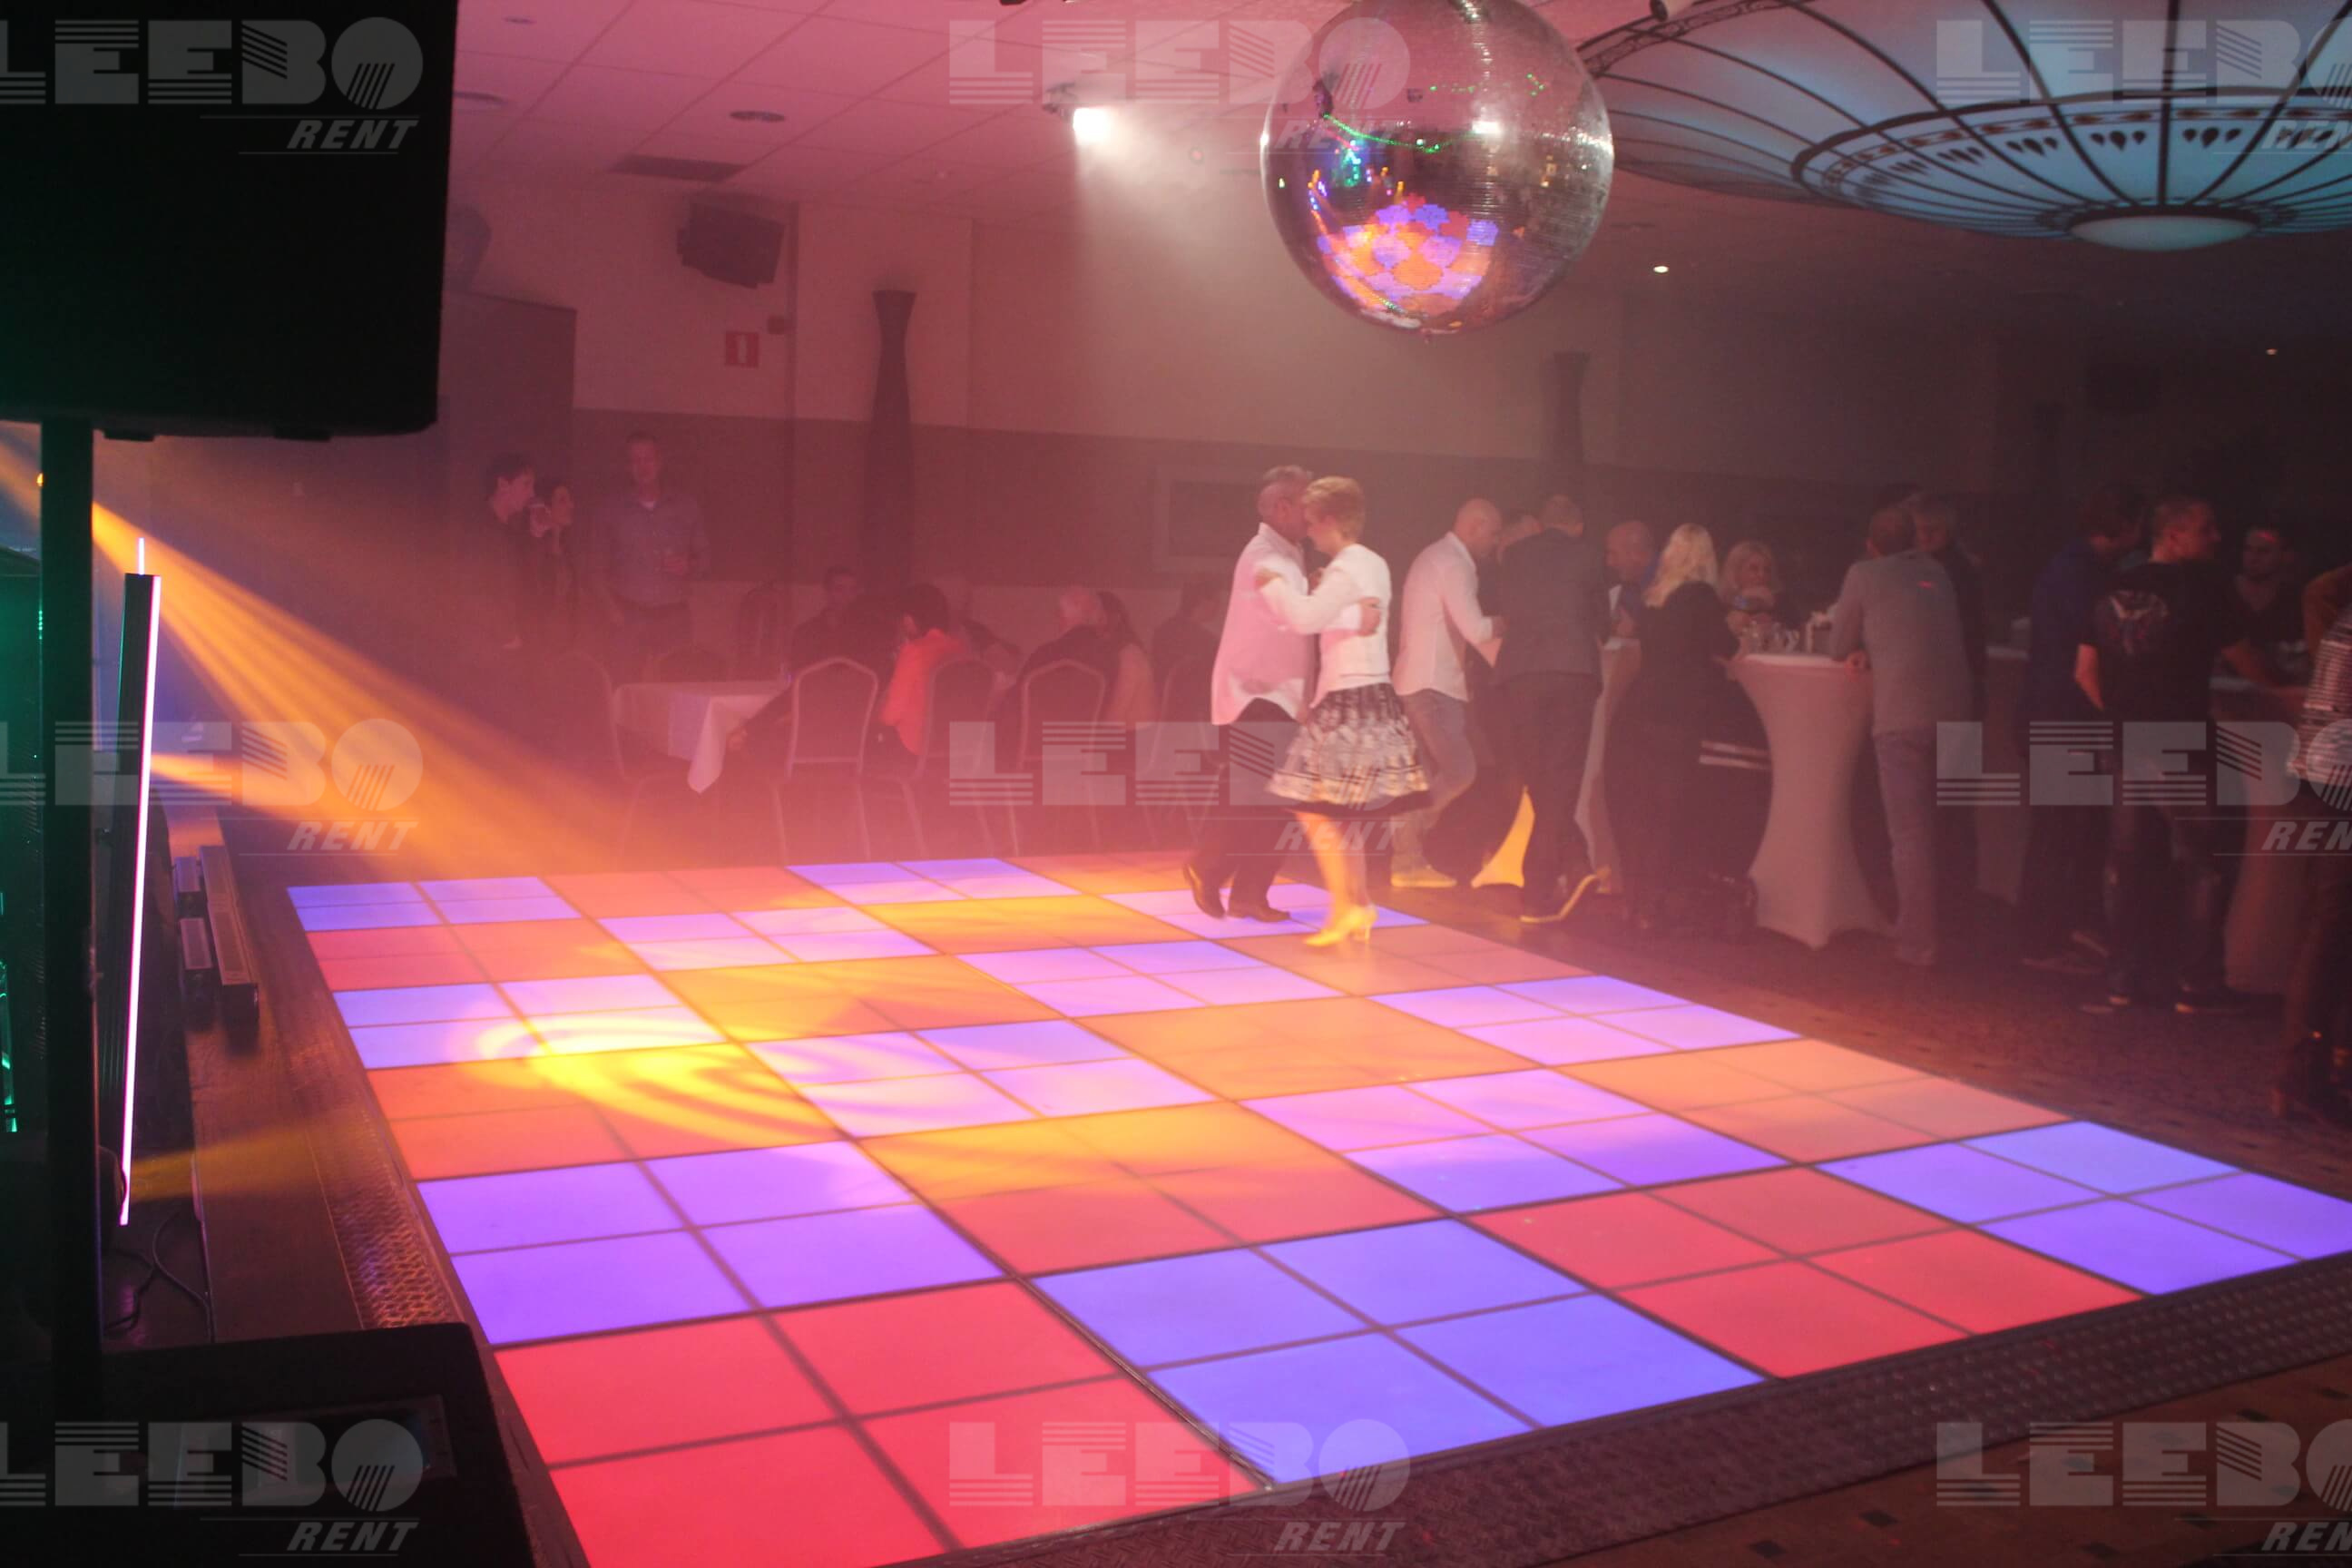 Saturdat Night fever Zoete Inval met Leeborent en DJ Disco